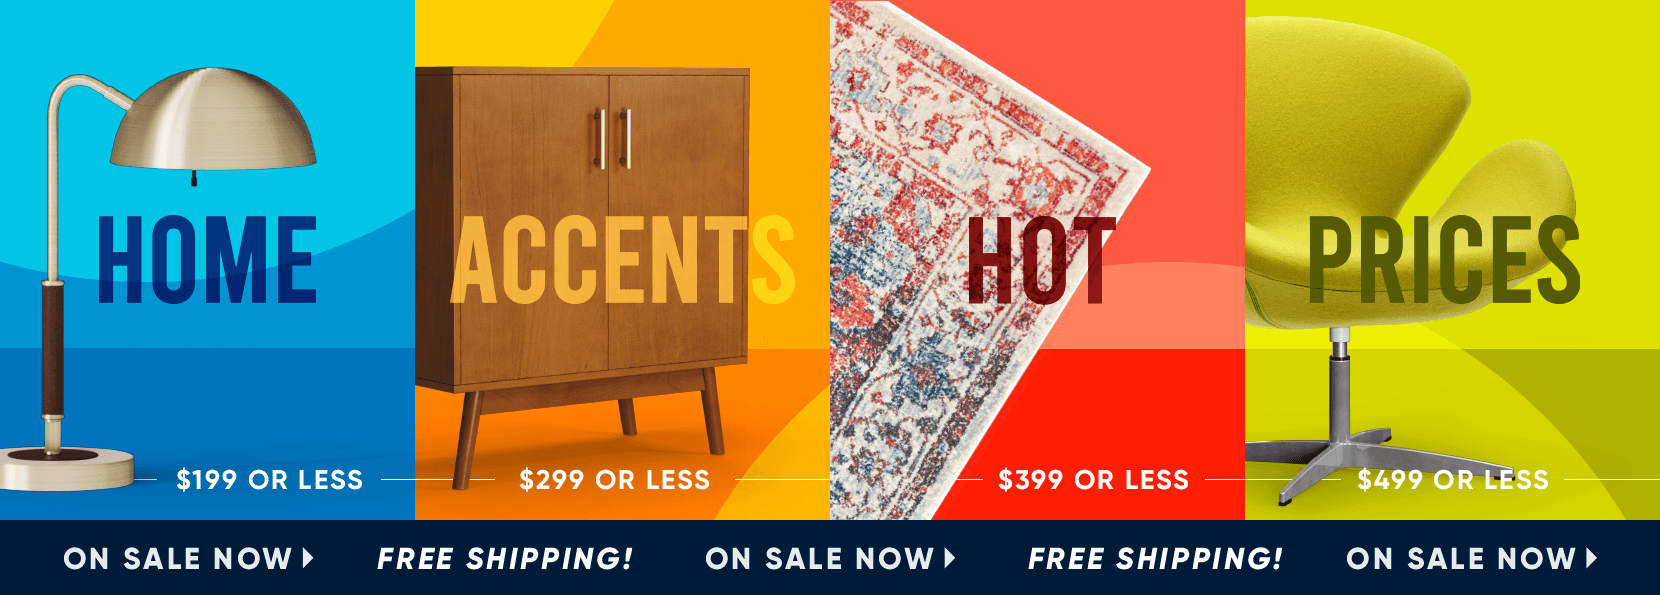 home accents hot prices. on sale now. free shipping